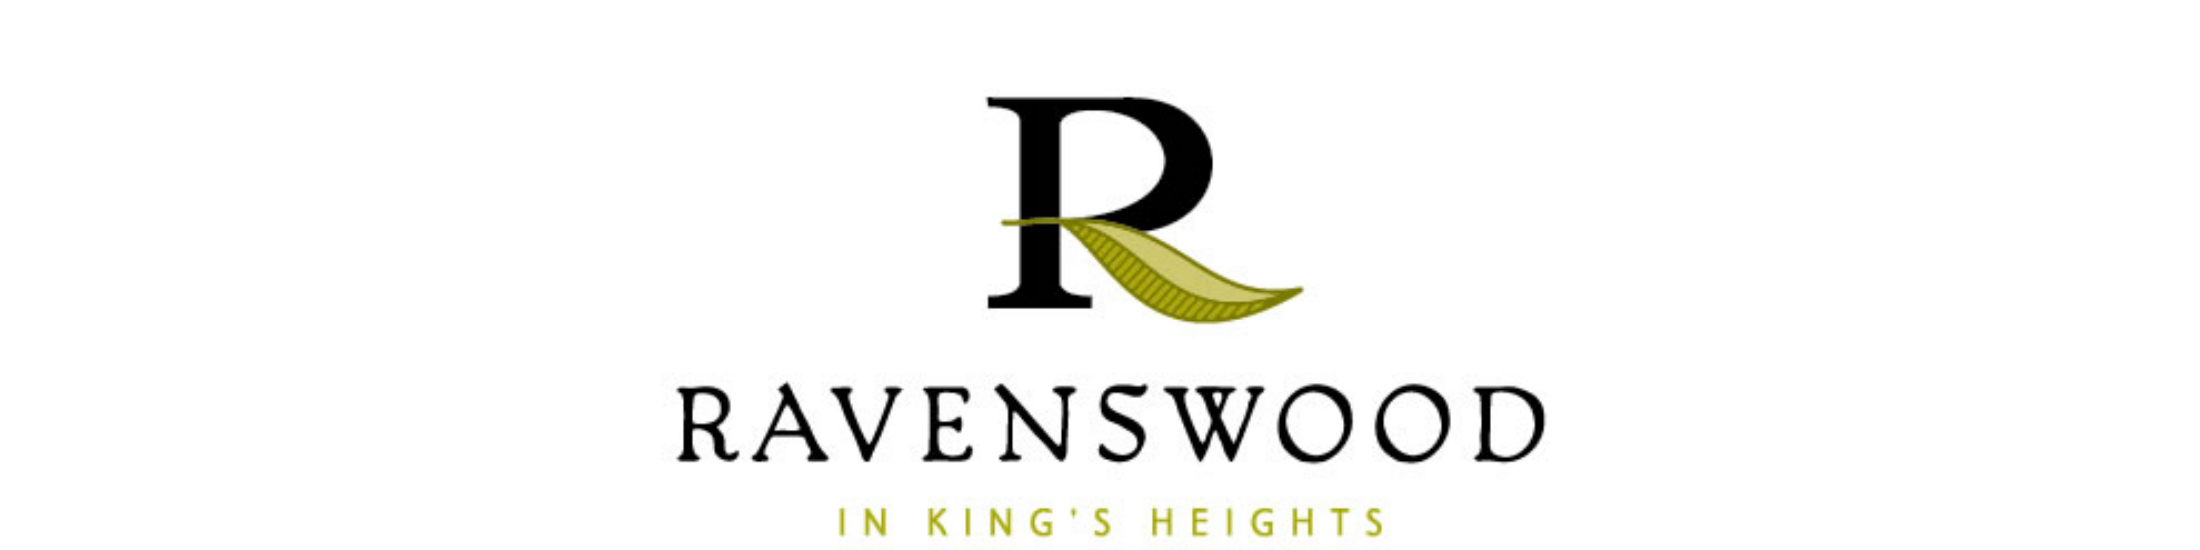 Ravenswood Airdrie